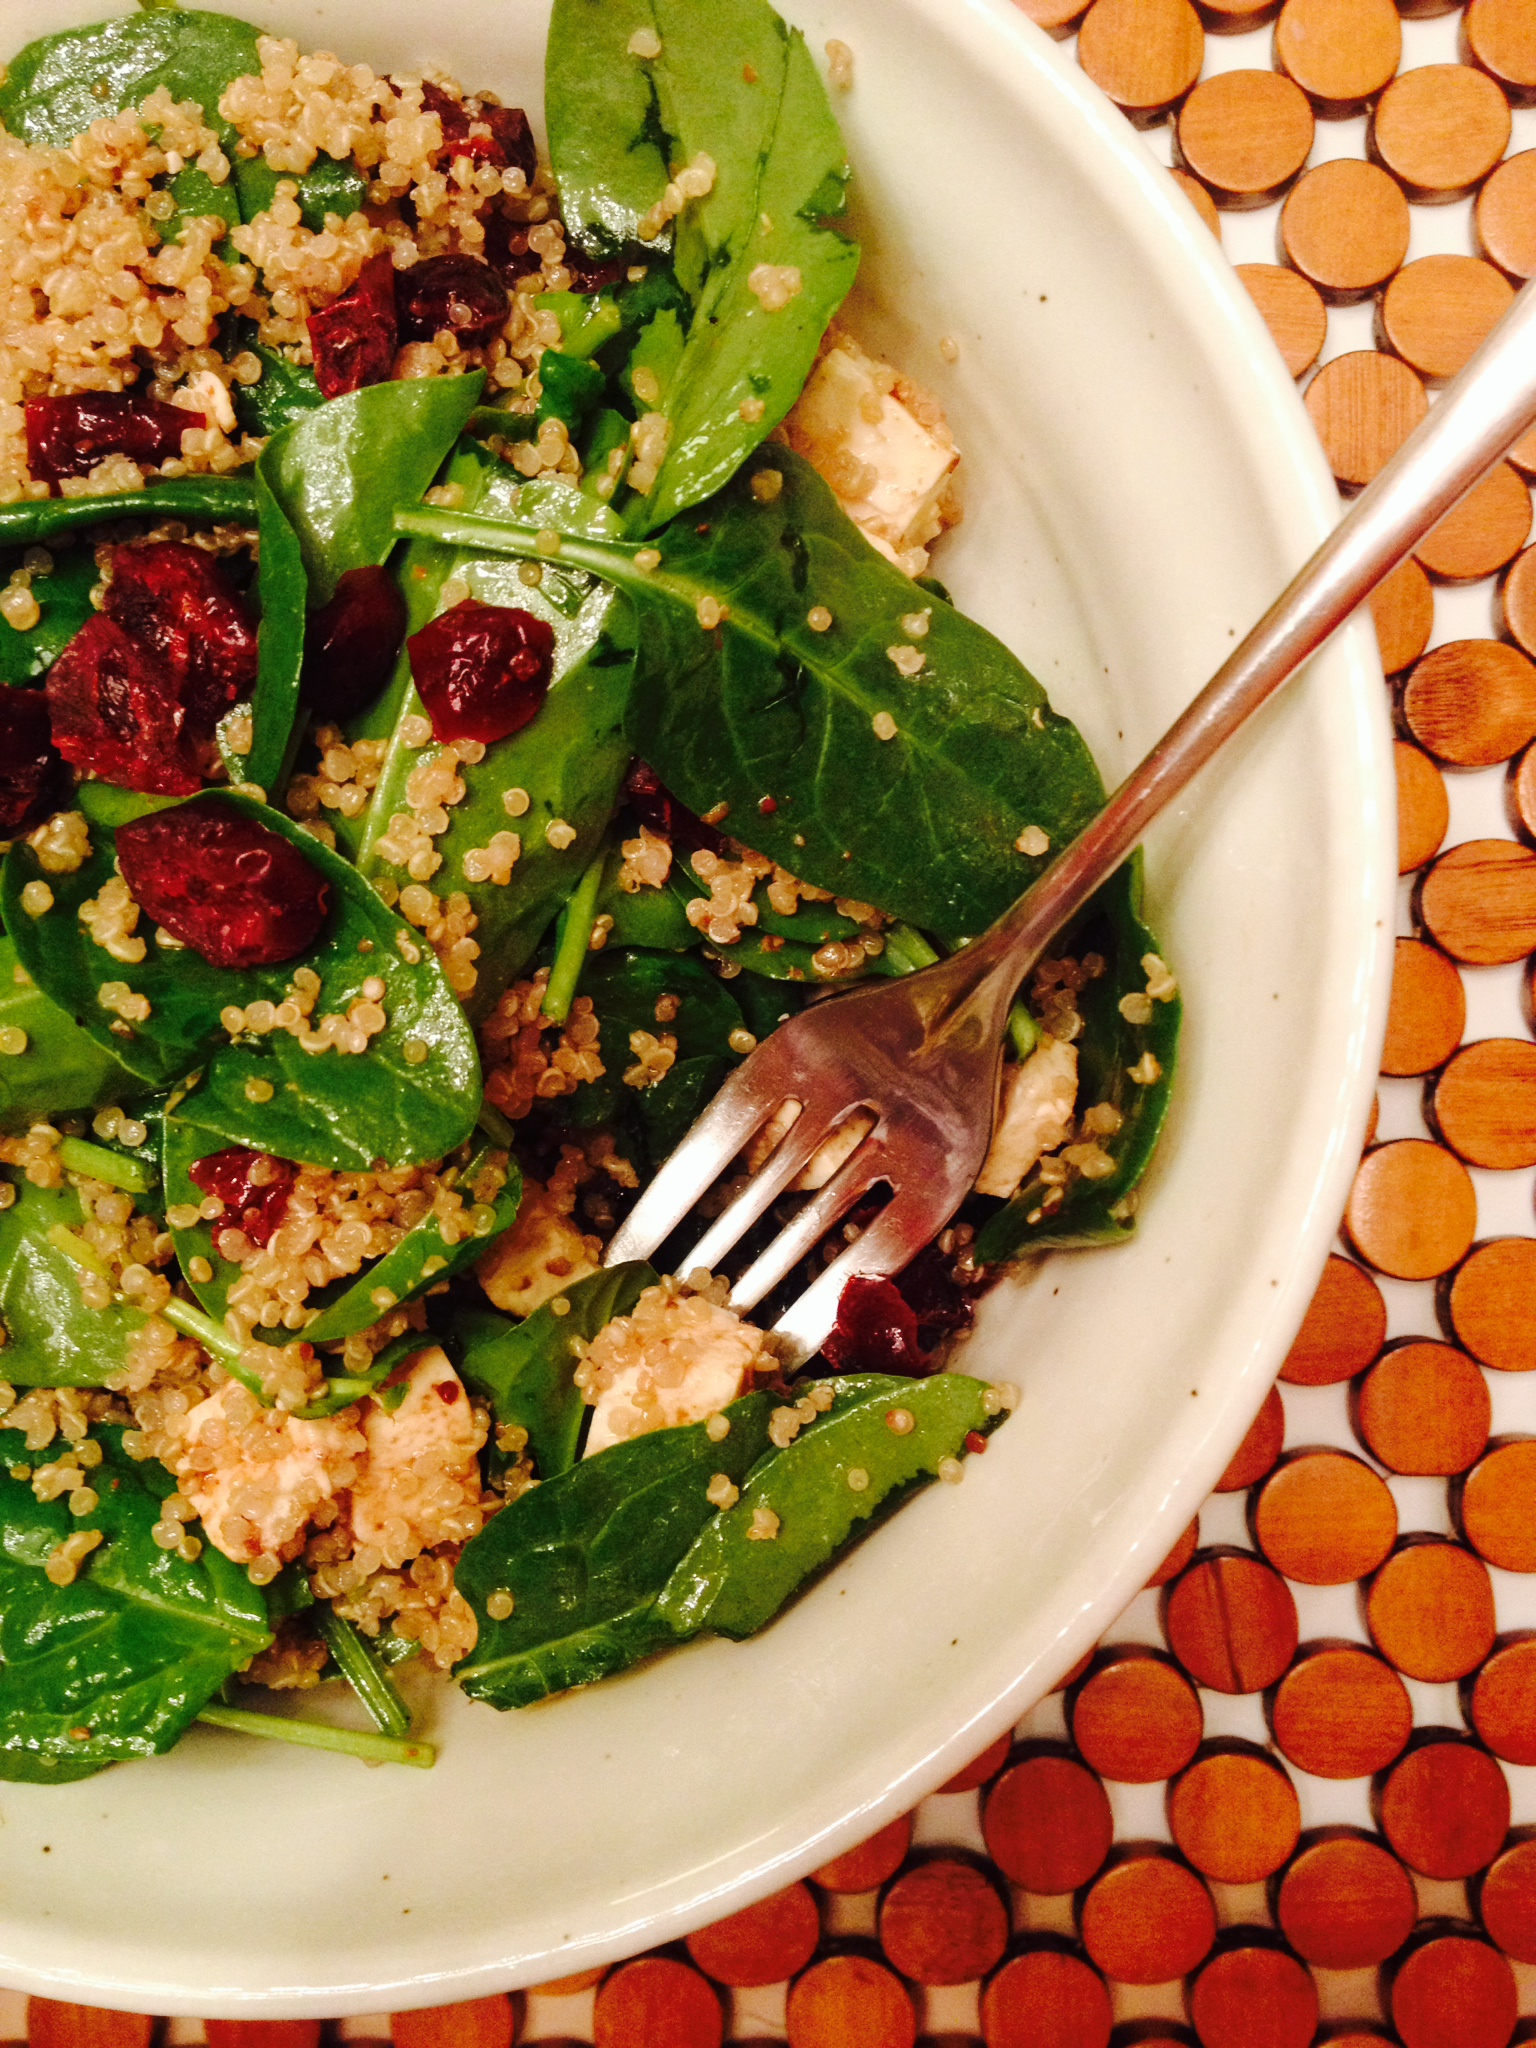 spinach quinoa feta salad :: by radish*rose